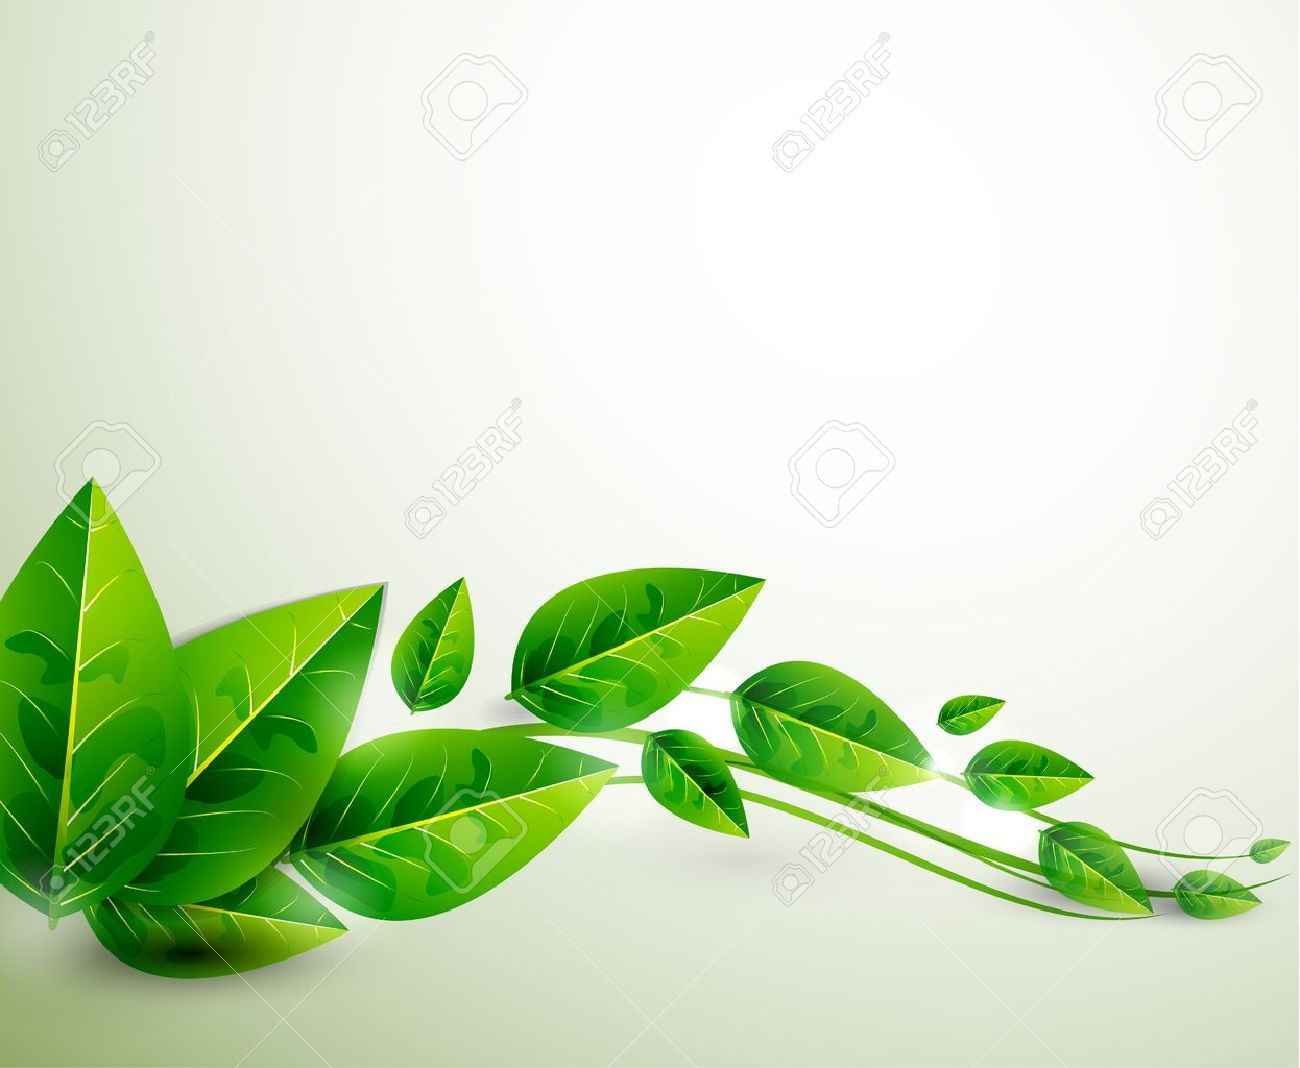 Nature Green Leaves Vector Flying Leaves Abstract Background